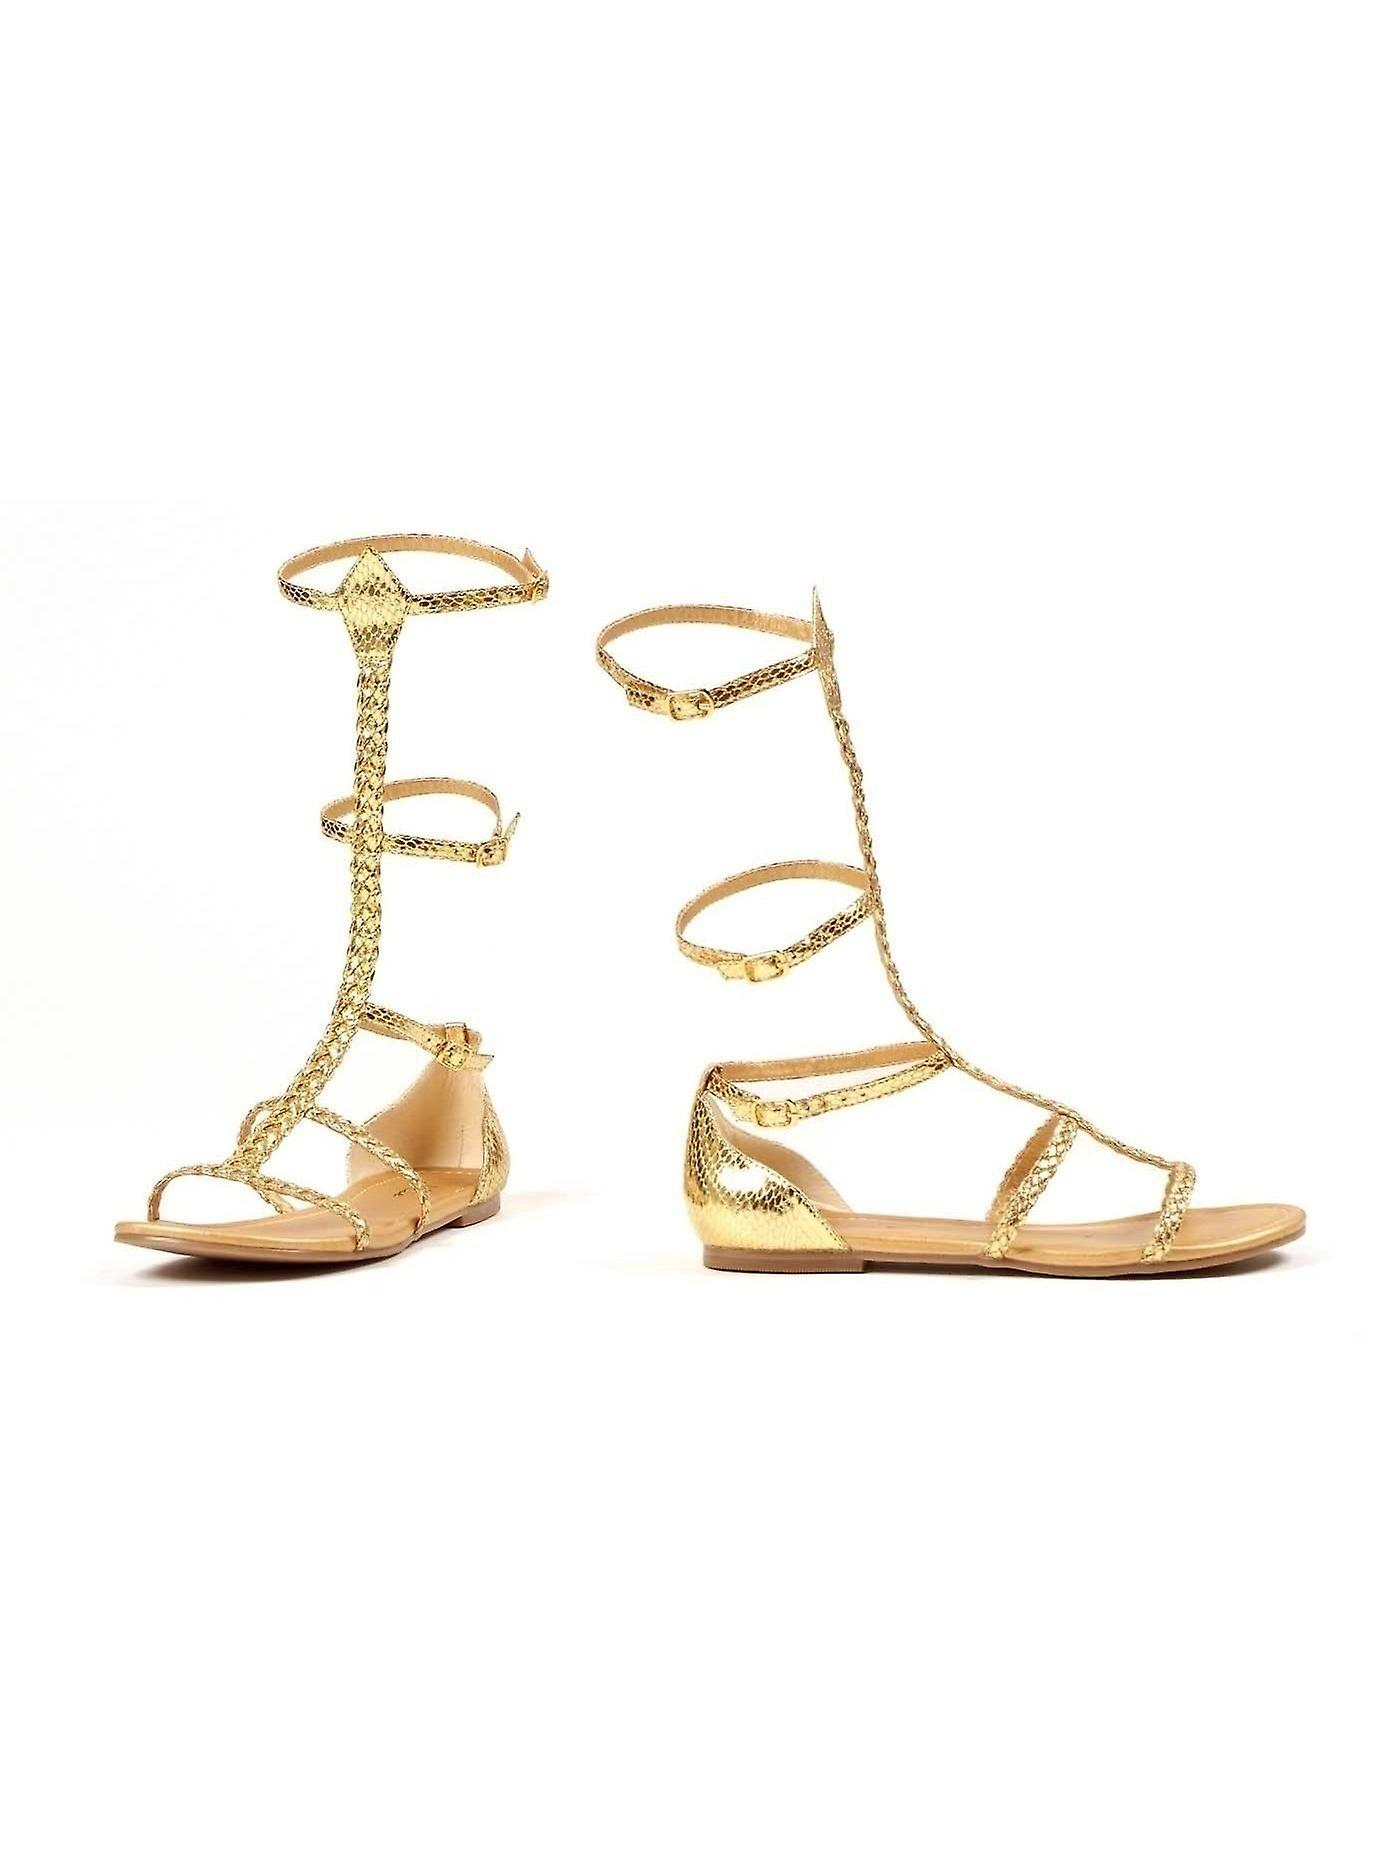 Ellie Shoes 0 E-015-Cairo Gladiator Flat Sandal